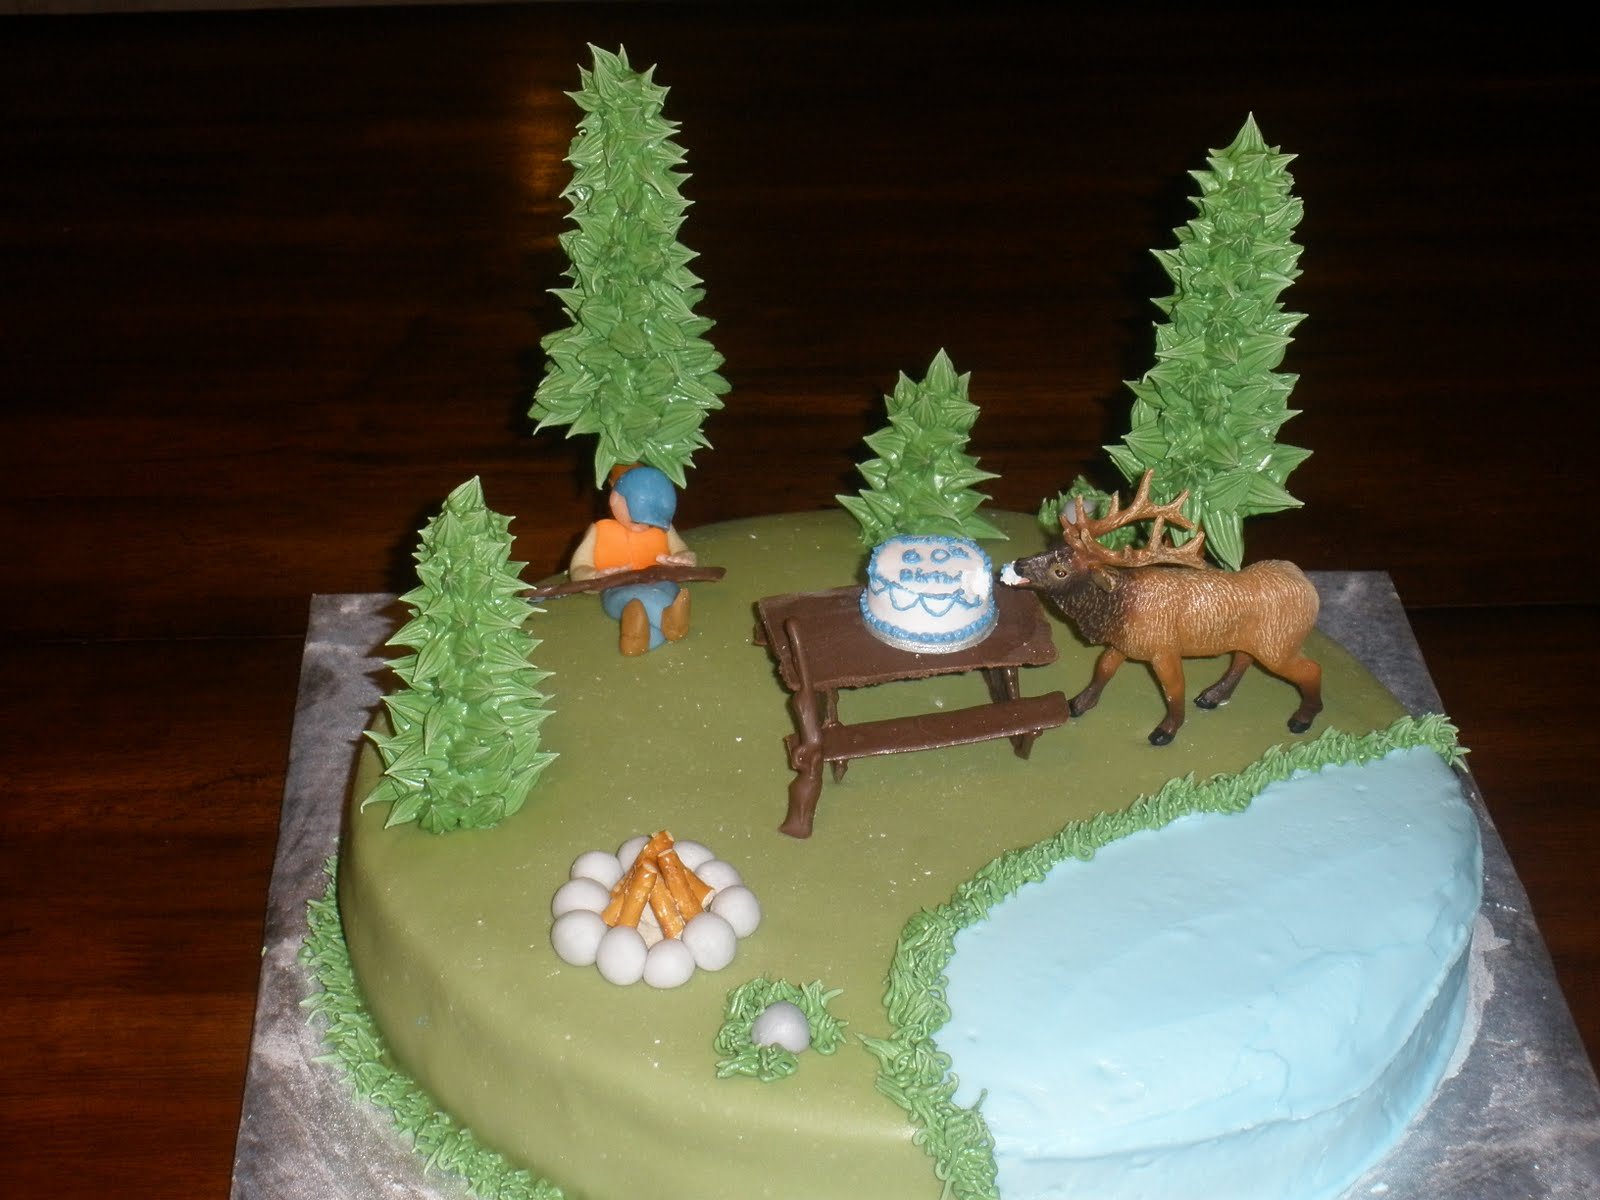 Hunting Cake Toppers For Birthday Cakes